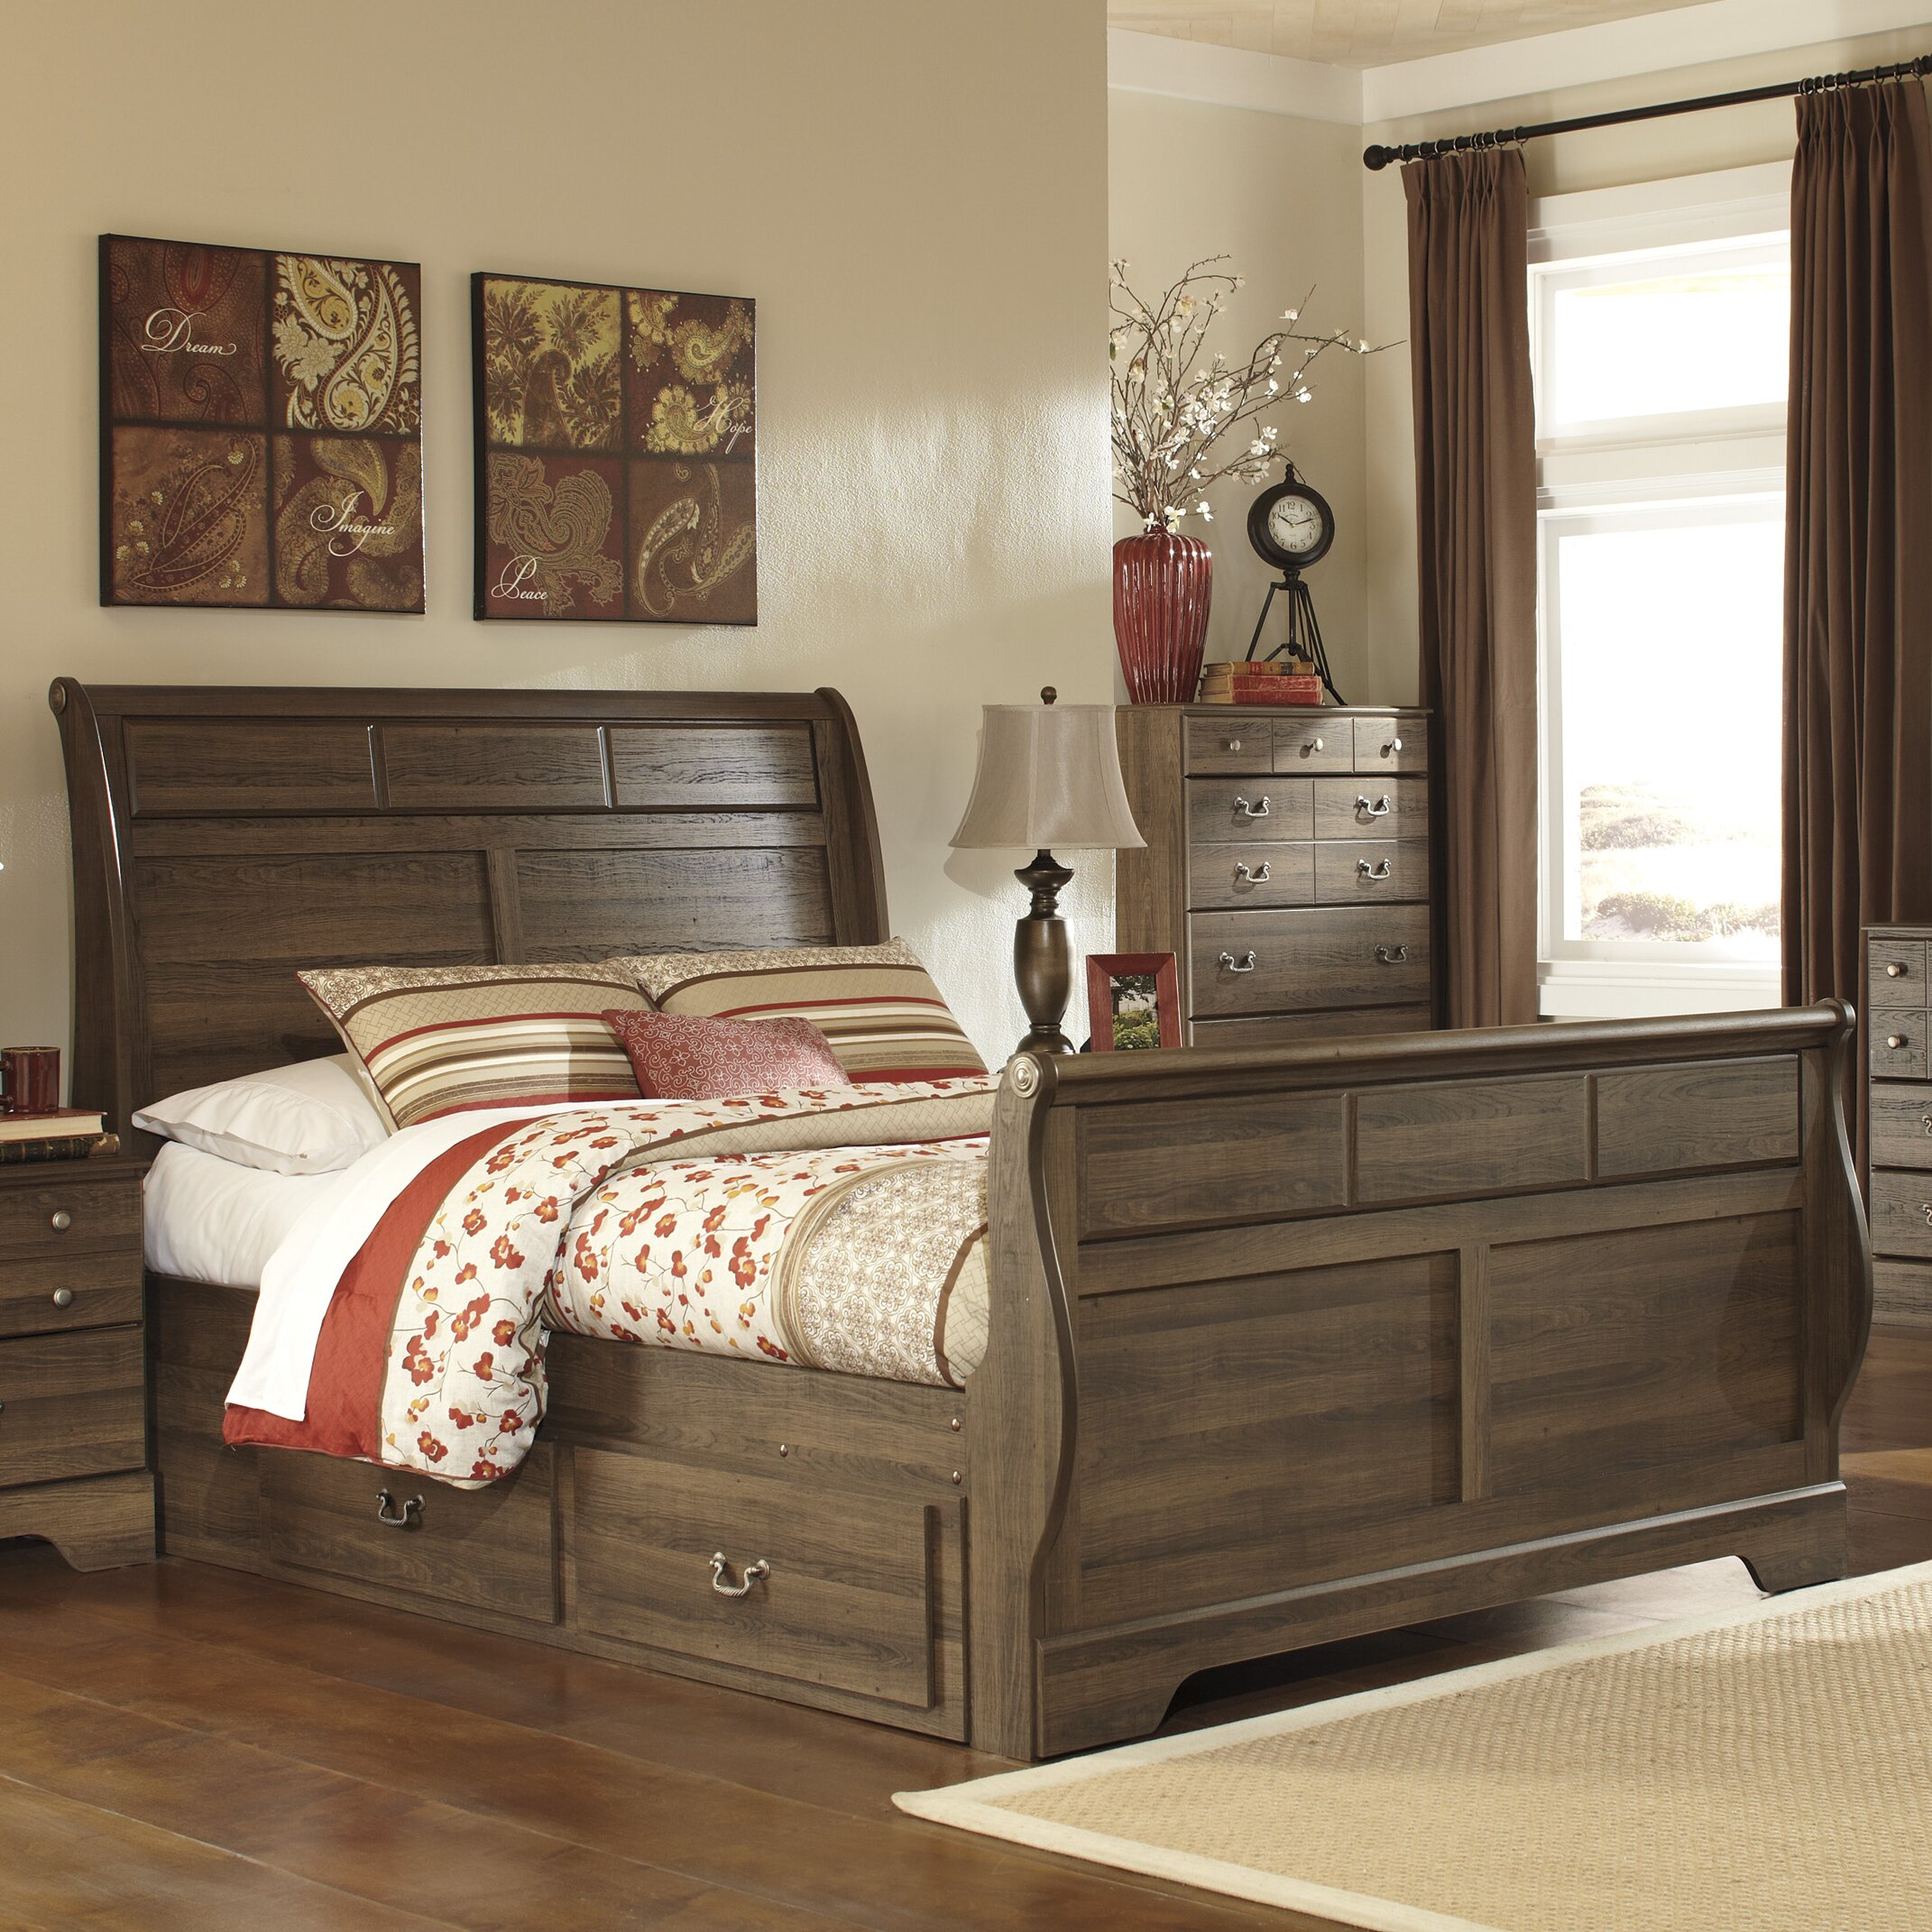 Ashley Furniture Beds: Signature Design By Ashley Allymore Sleigh Customizable